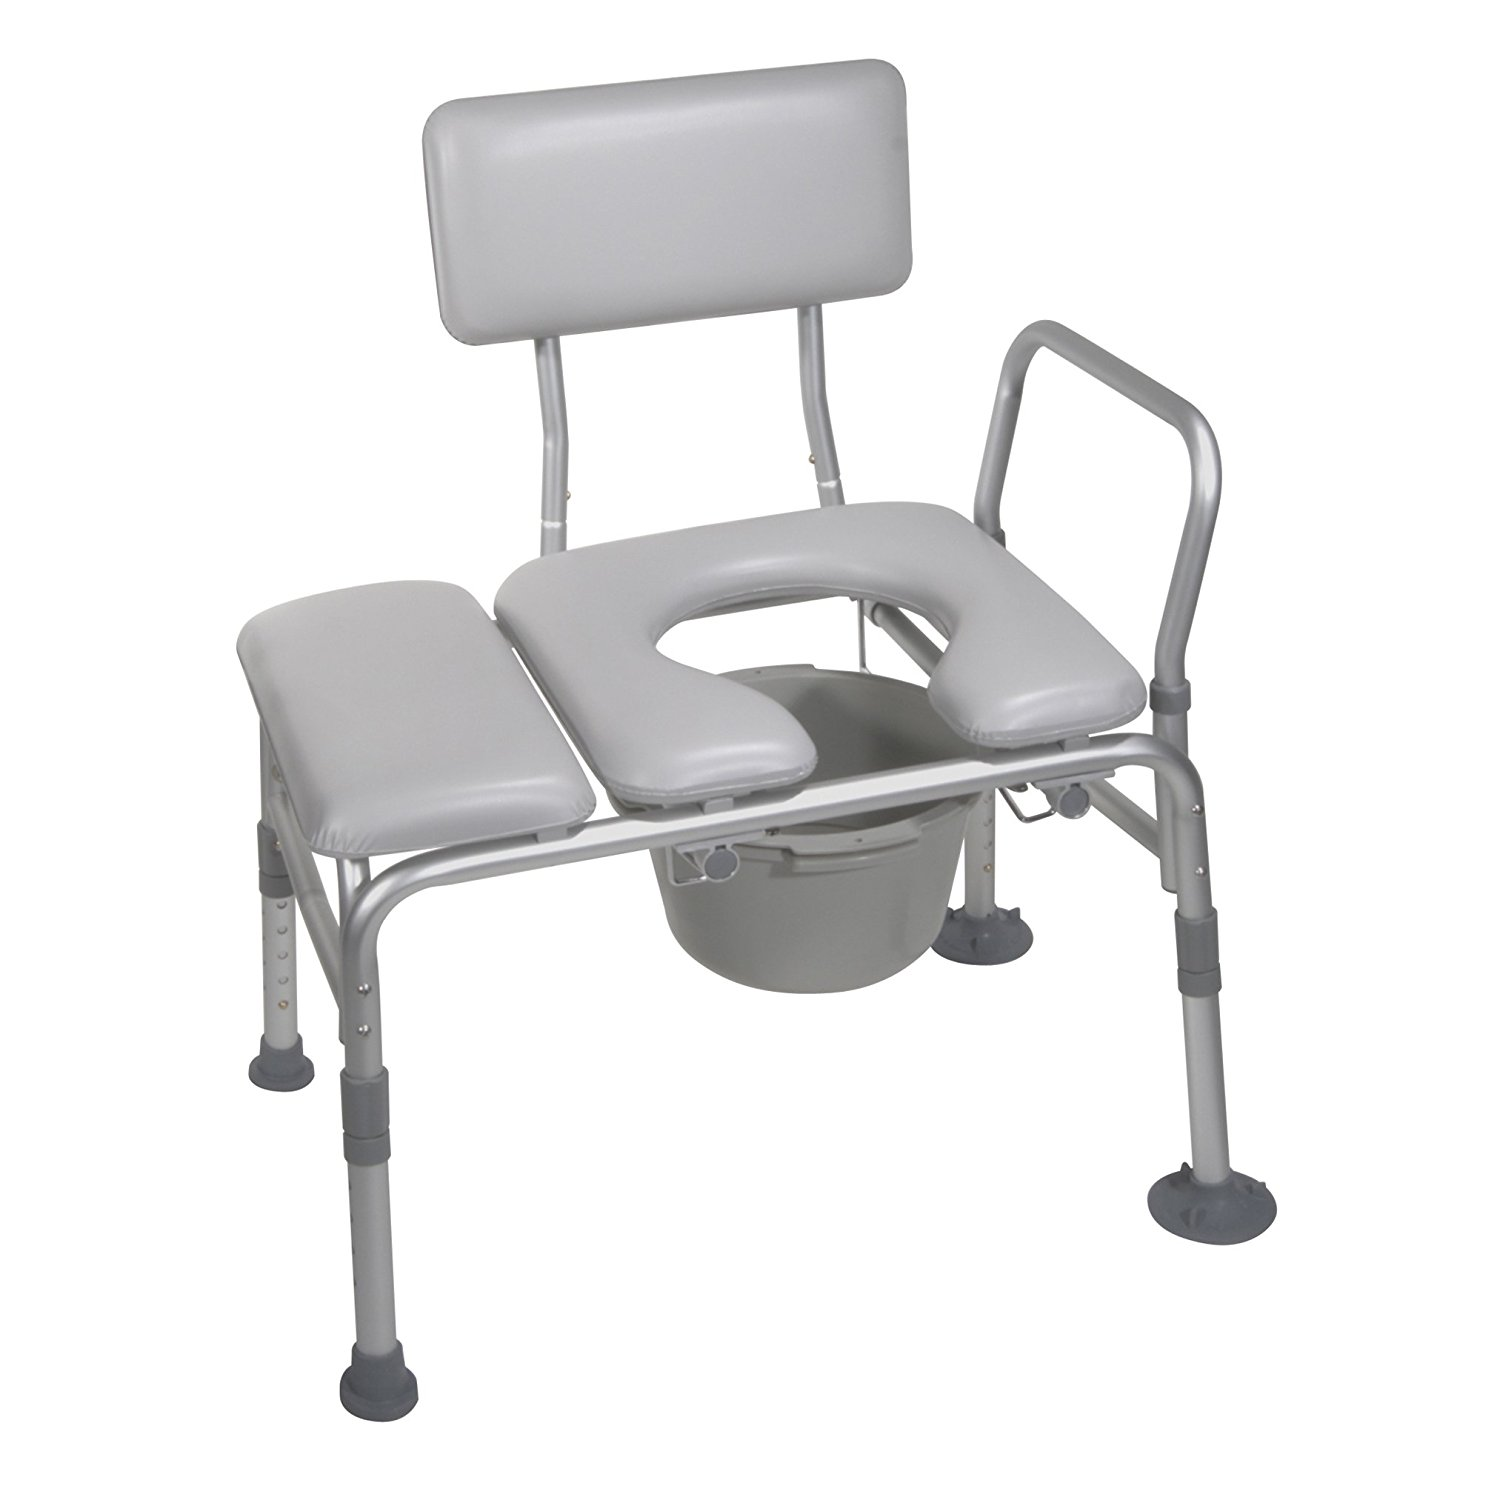 Transfer Tub Bench | Bathtub Seats for Elderly | Tub Shower Transfer Bench